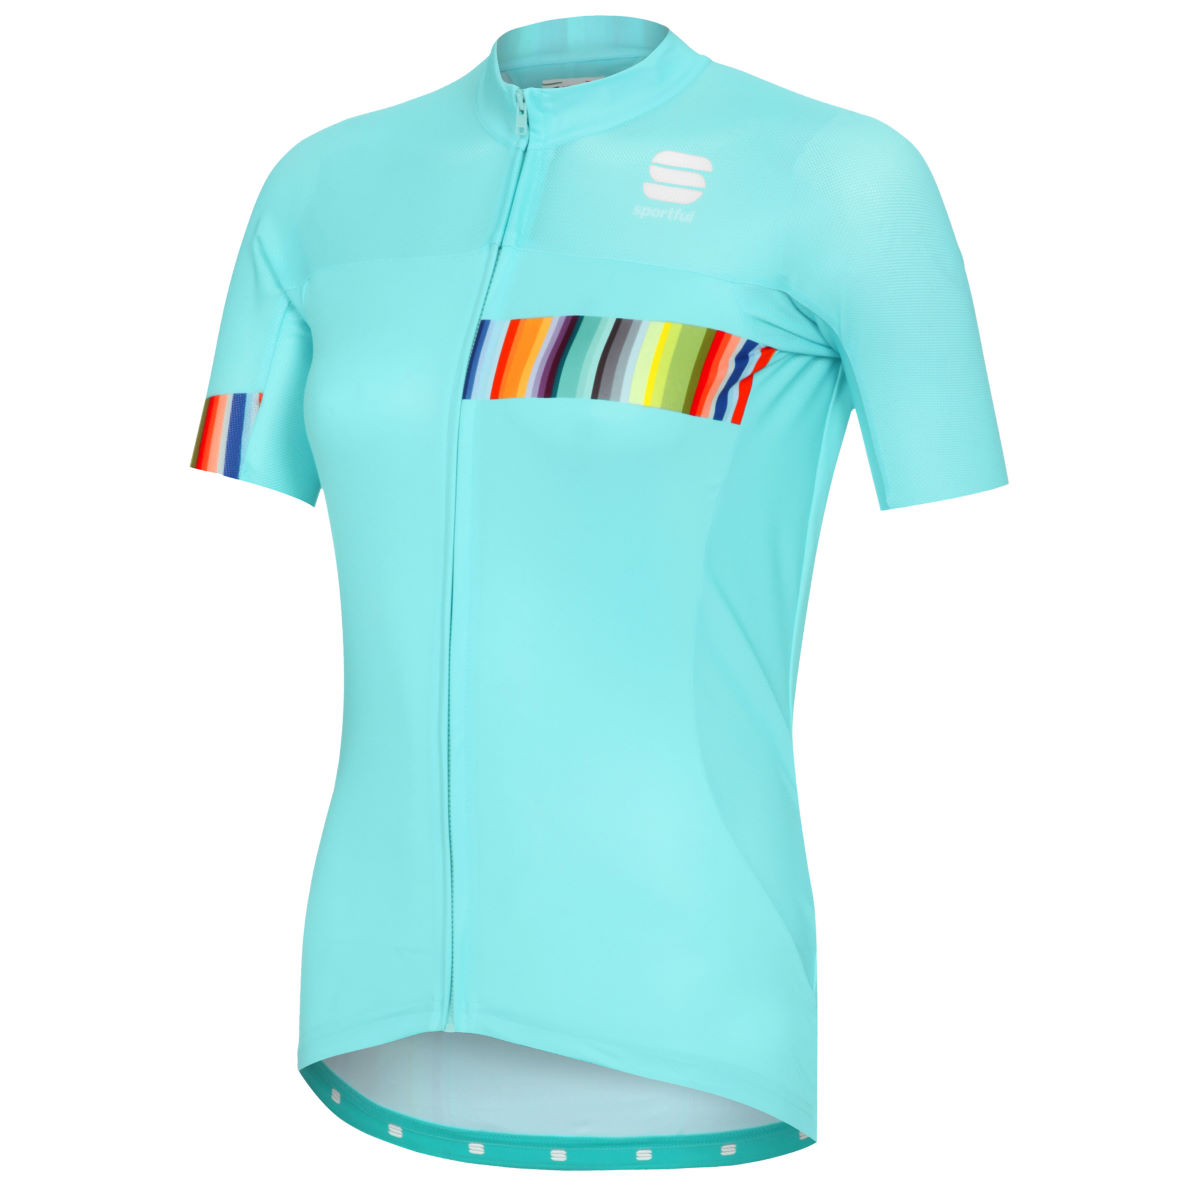 Maillot Femme Sportful Exclusive Rainbow BodyFit Team - L Blue